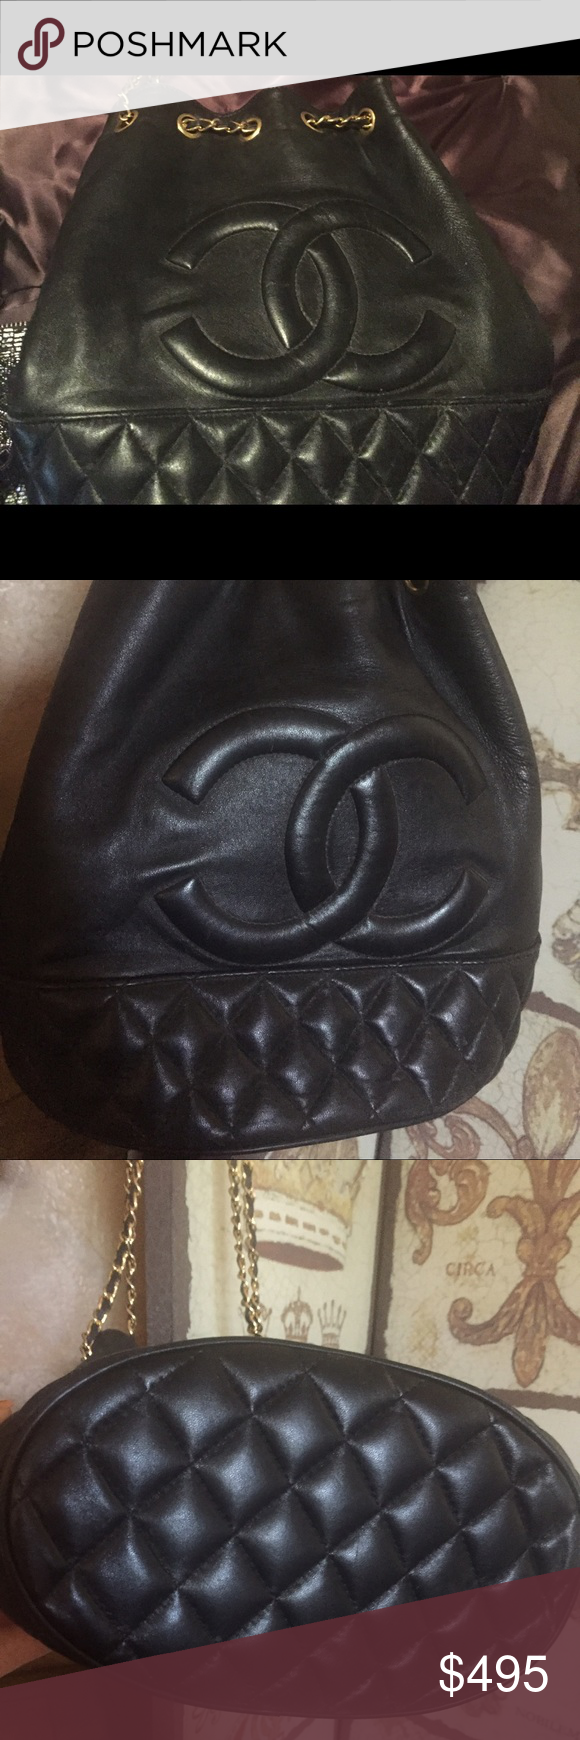 Quilted shoulder handbag Trying to decide if I should sell. 🤔It's in excellent preloved condition & although it's not the real deal it's really a beautiful classic vintage bag stored w care non smoking home too. Chanel inspired so no code, no bag or box. Black w gold hardware. Feels like lamb leather but not sure. Classic Bags Shoulder Bags